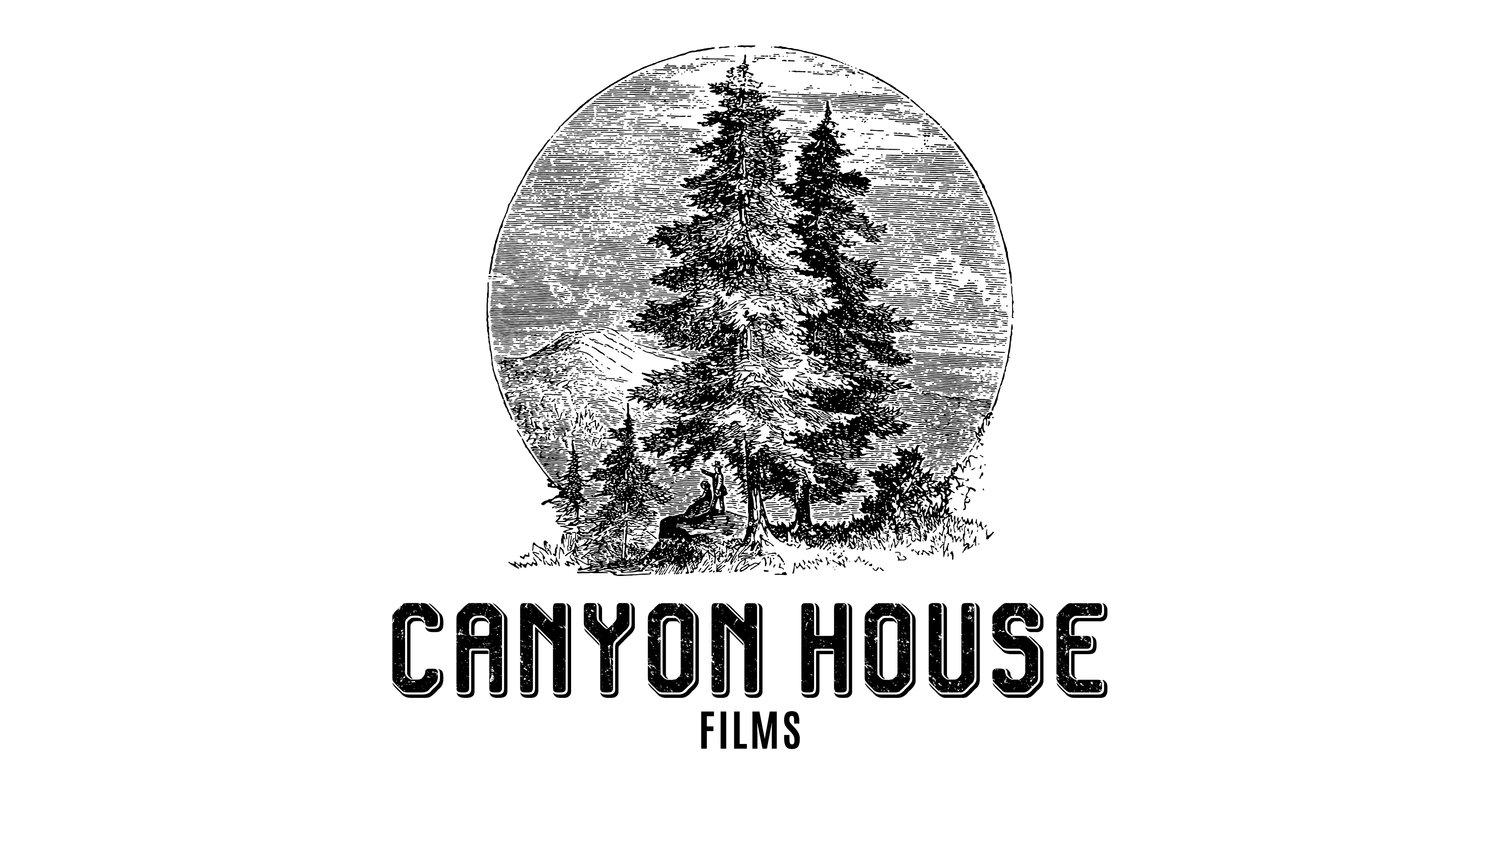 CANYON HOUSE FILMS